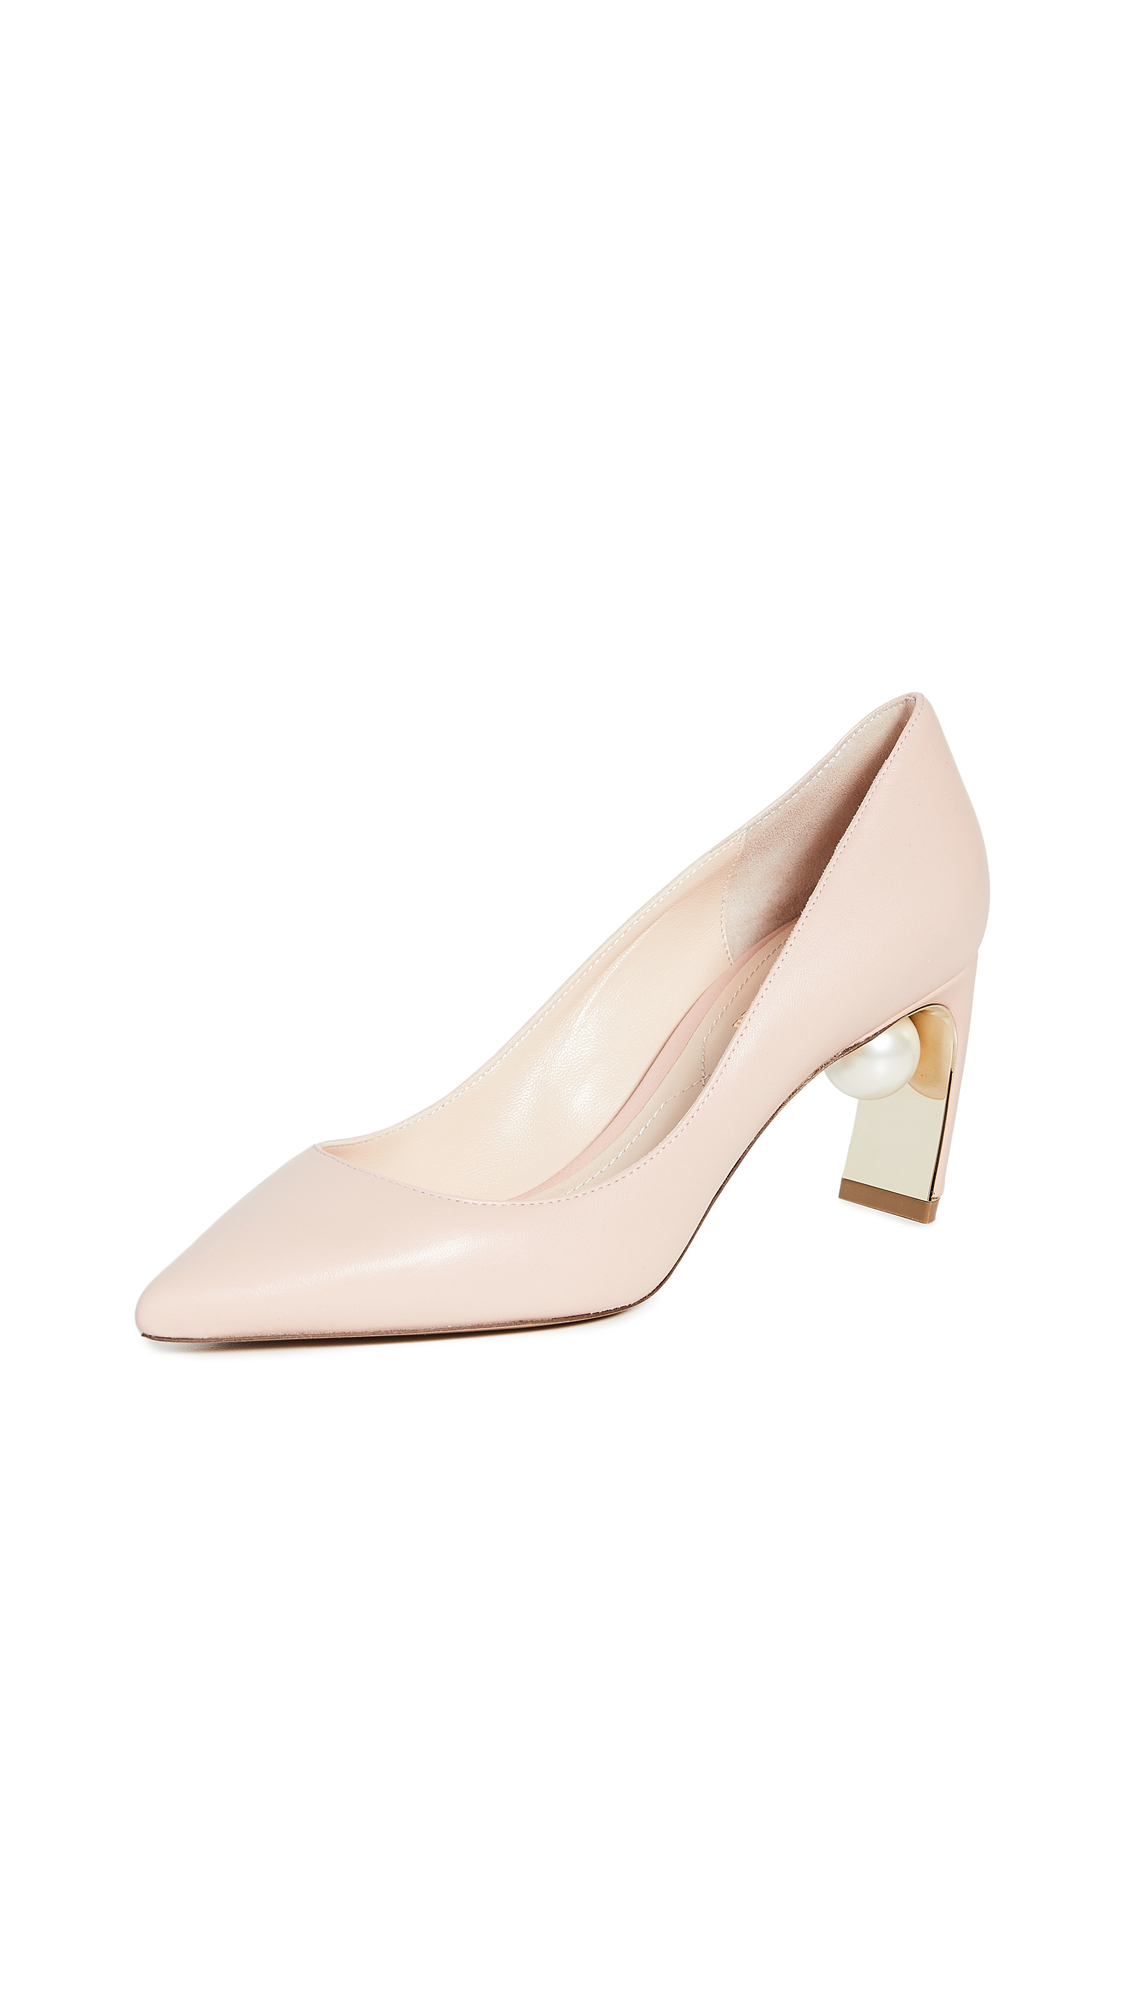 Nicholas Kirkwood Maeva Pumps - 60% Off Sale